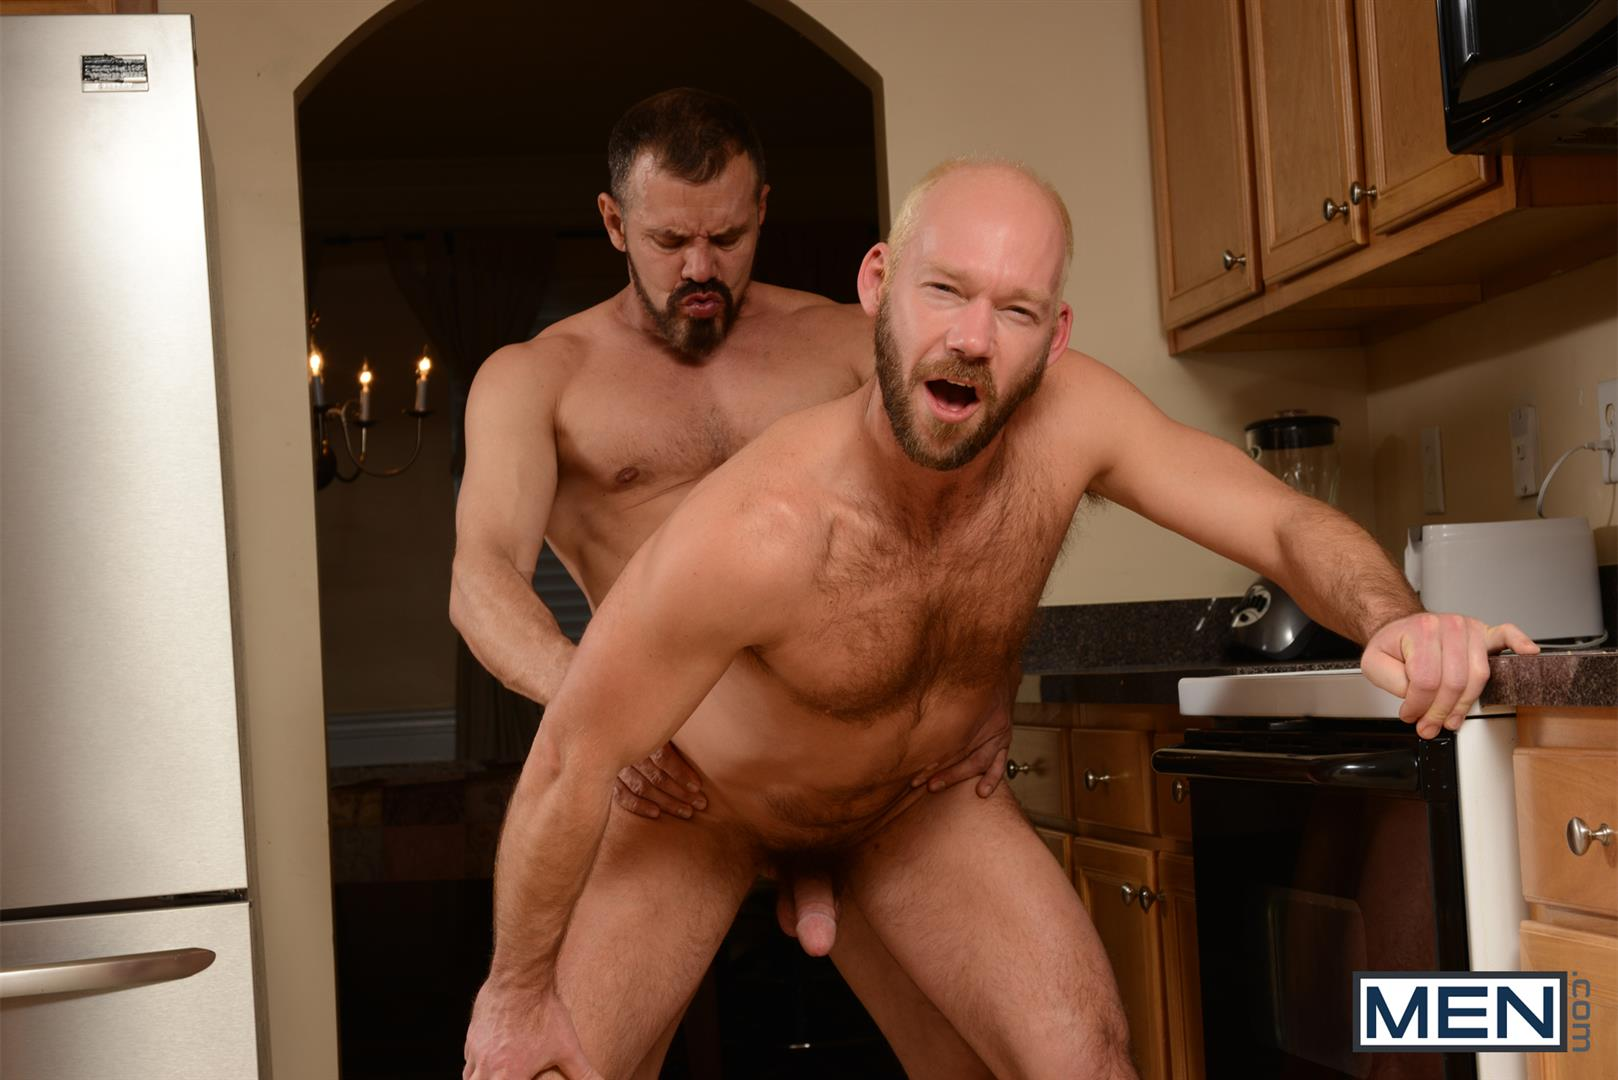 Men-Drill-My-Hole-Max-Sargent-and-Mike-Tanner-Thick-Cock-Daddys-Fucking-Amateur-Gay-Porn-12 Hairy Muscle Daddy's Fucking In The Kitchen And Eating Cum